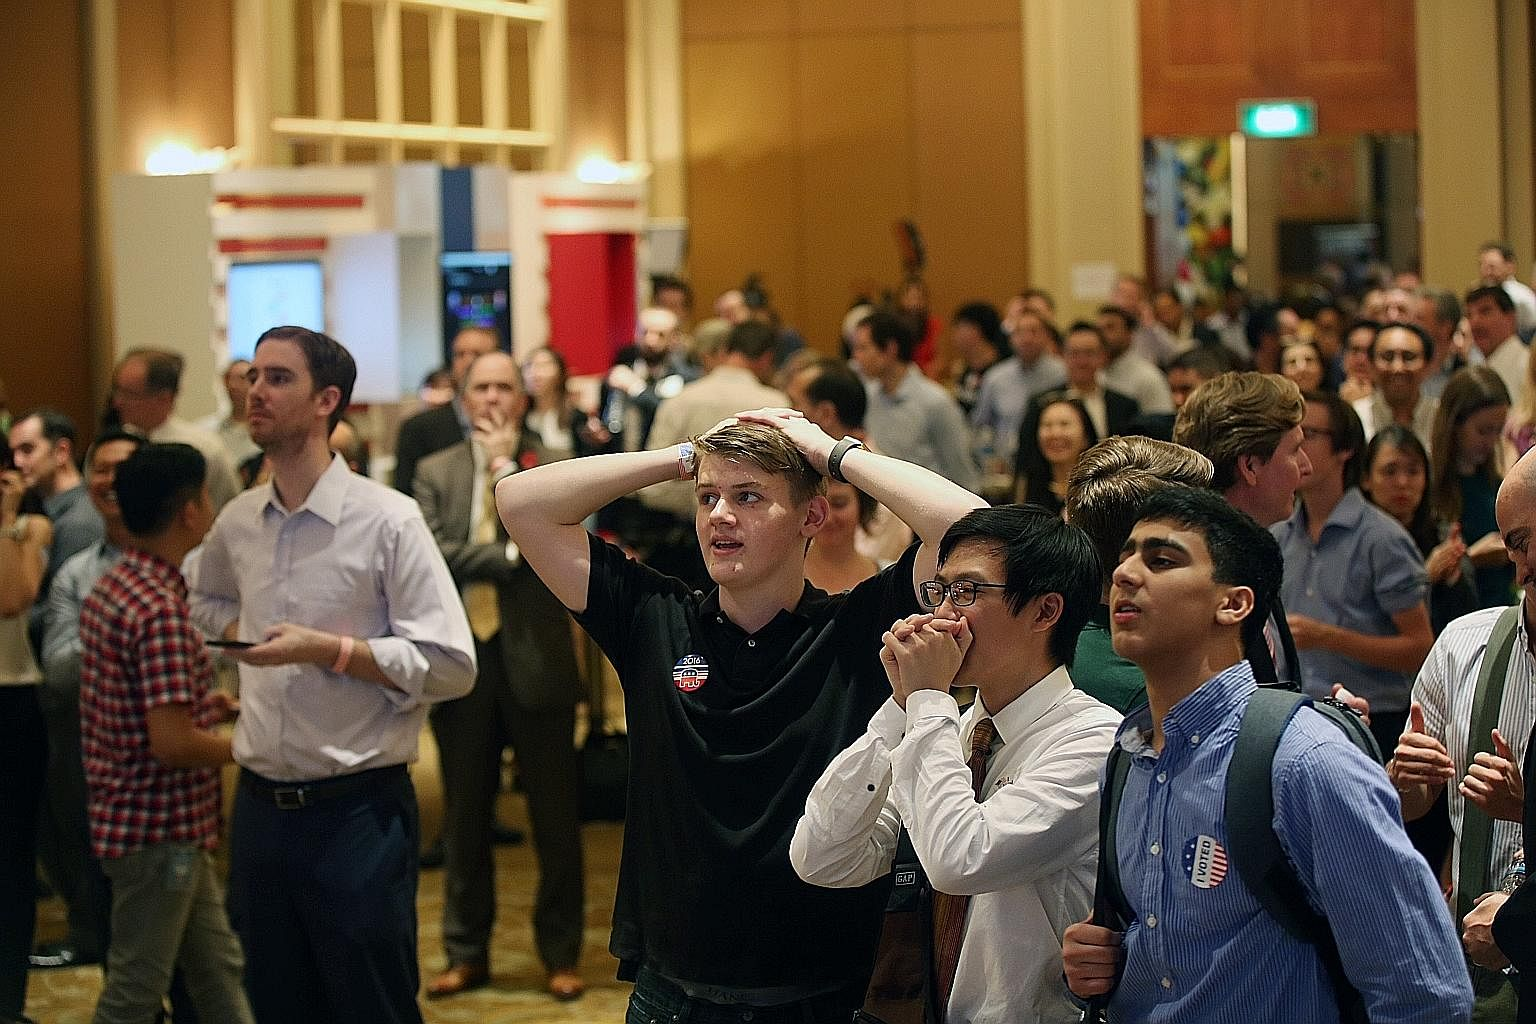 Guests at the US election results watch party yesterday reacting to live updates of the polls showing Mr Trump was pulling ahead and likely to win. US Ambassador to Singapore Kirk Wagar said at the start of the party that America will remain committe